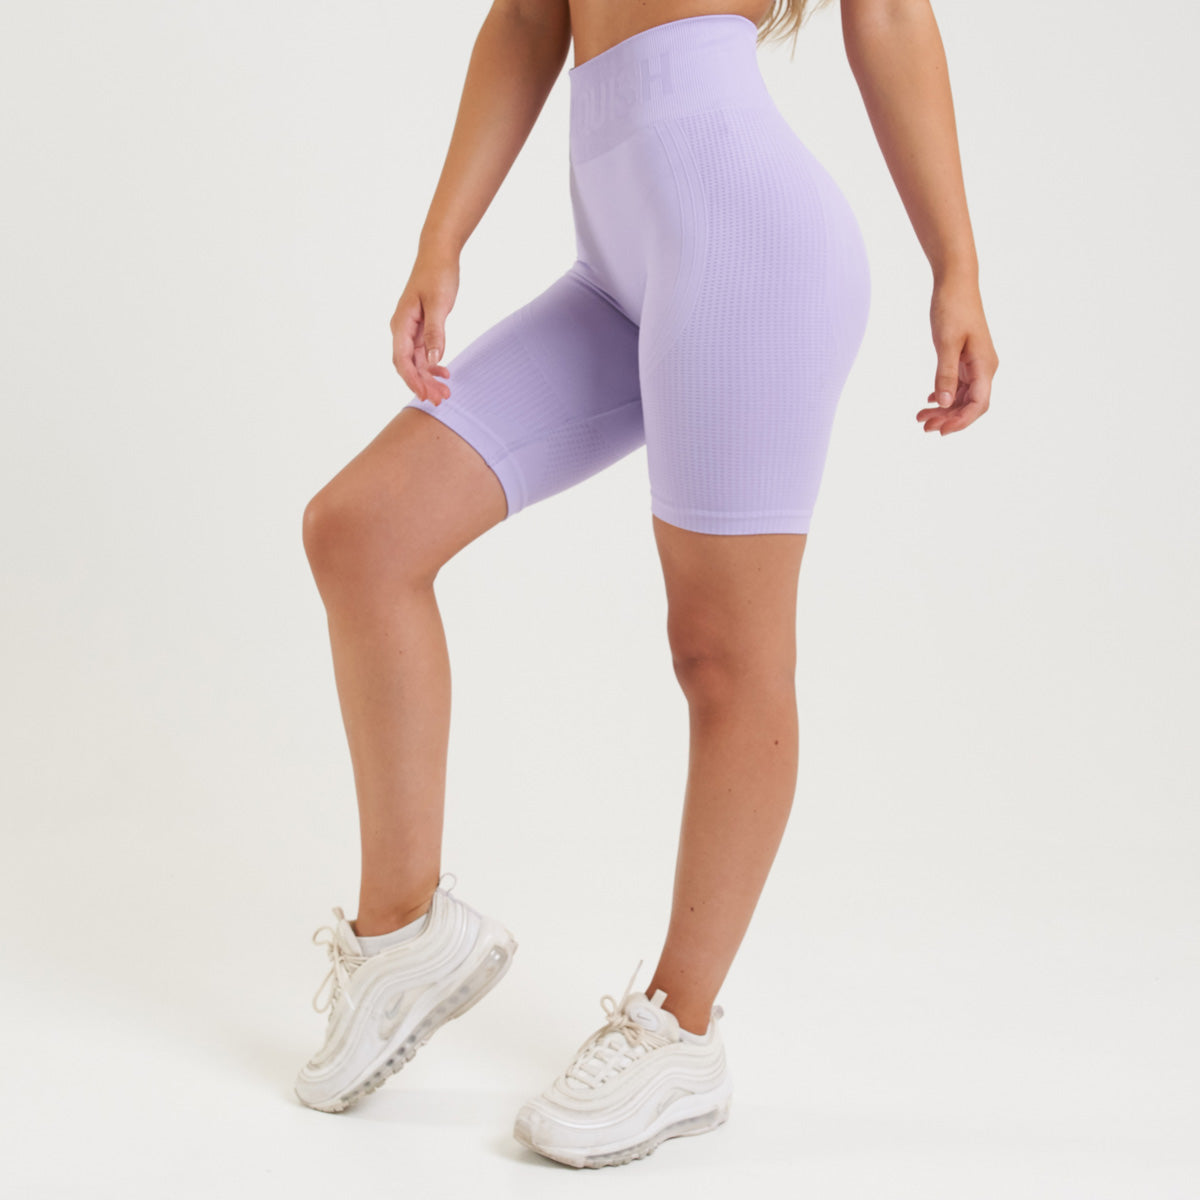 Vanquish Bright Women's Lilac Seamless Cycling Shorts